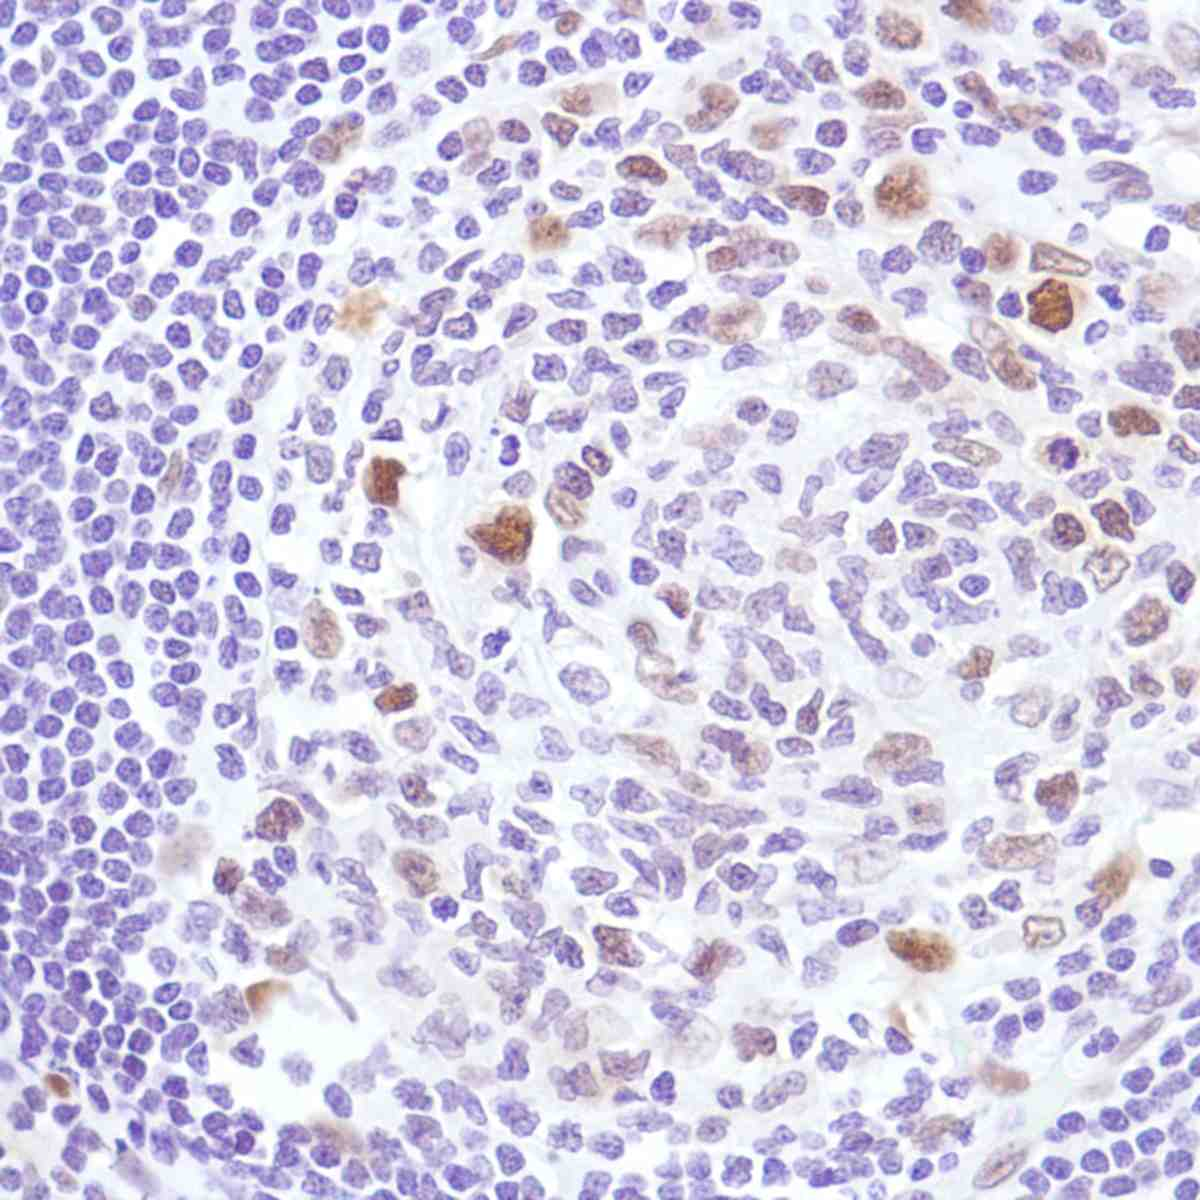 Human Reactive Lymph Node stained with anti-Cyclin D3 antibody